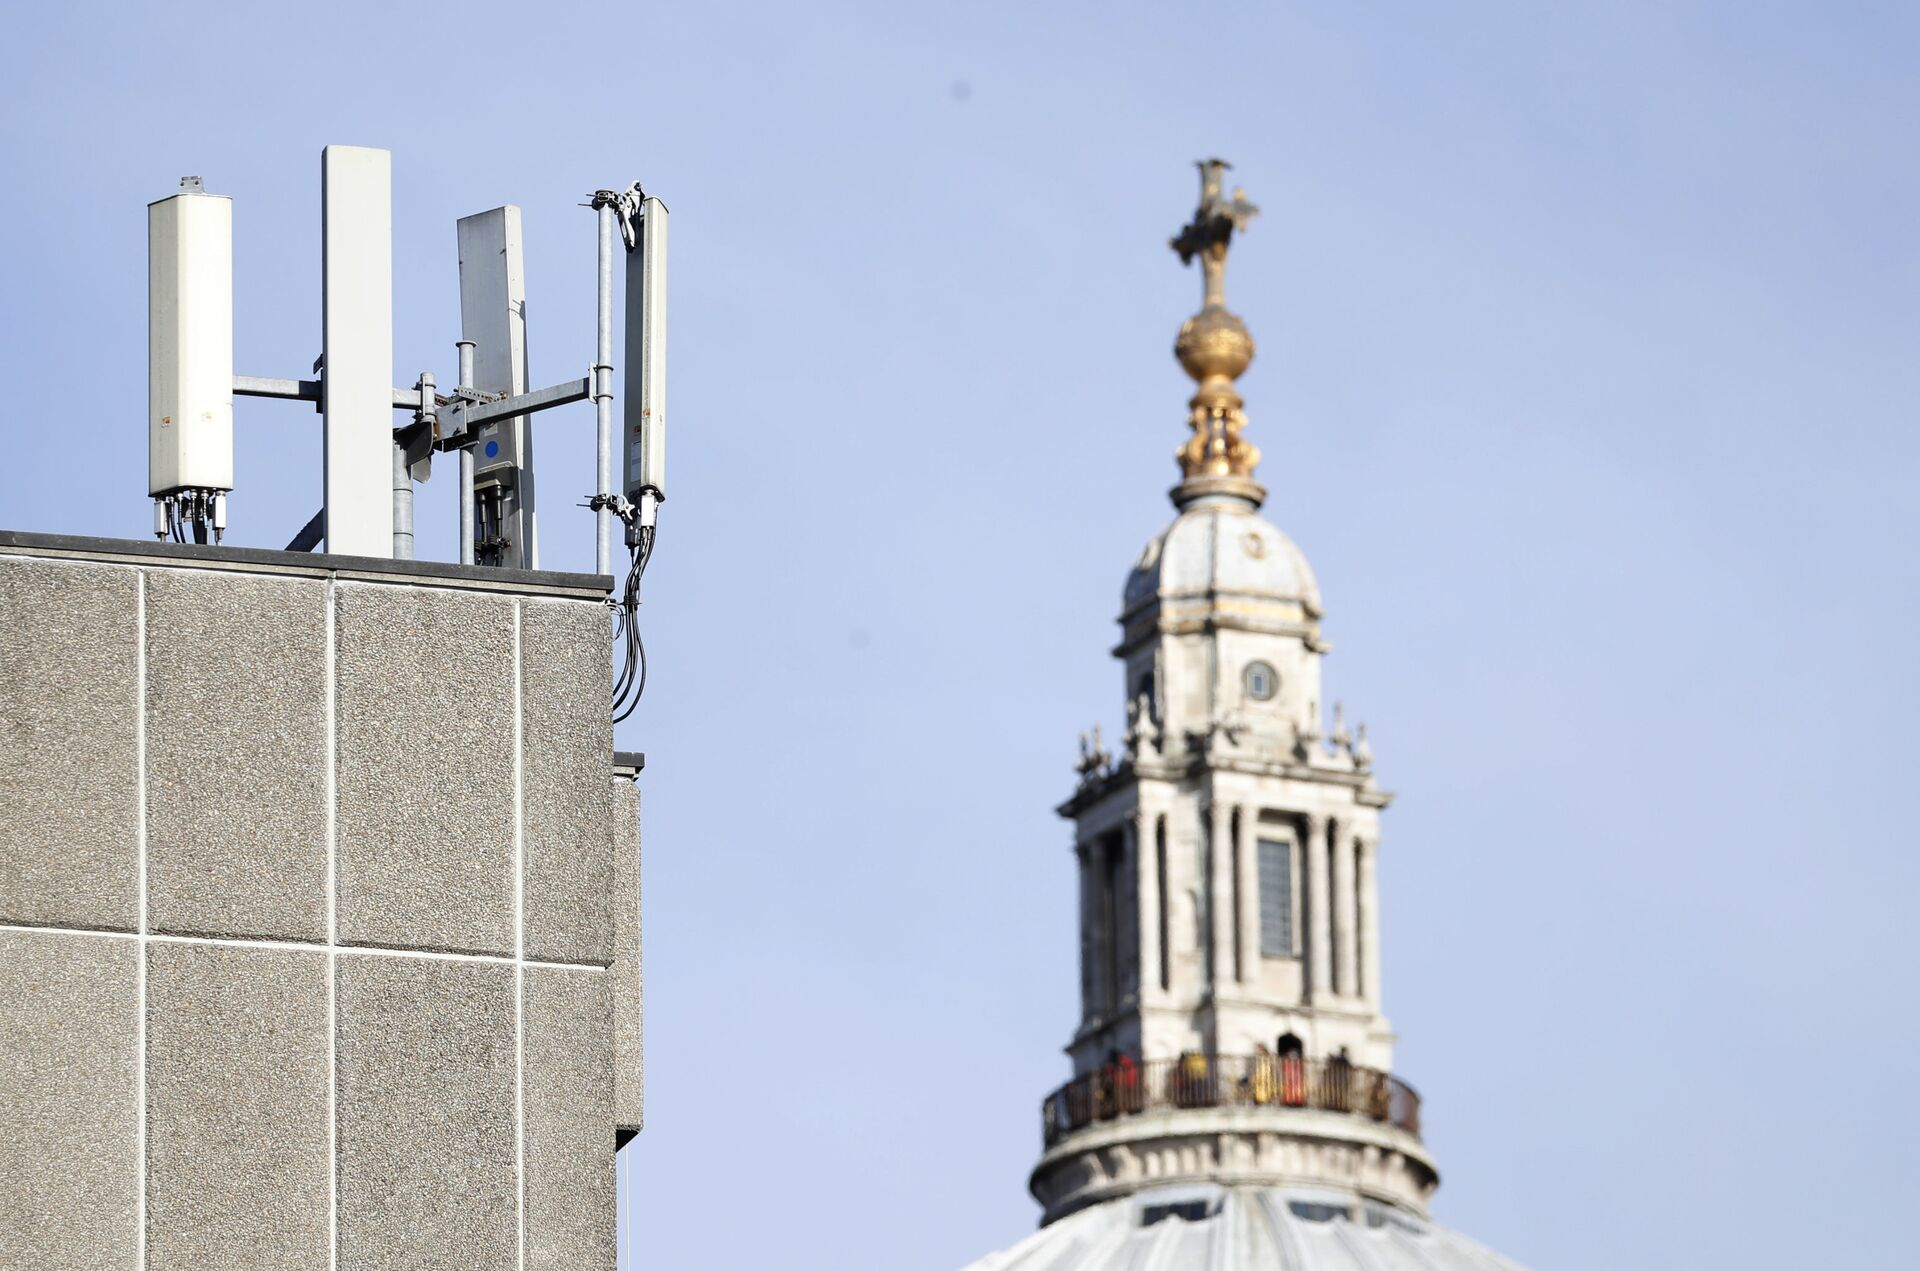 Mobile network phone masts are visible in front of St Paul's Cathedral in the City of London, Tuesday, Jan. 28, 2020. - Sputnik International, 1920, 25.09.2021